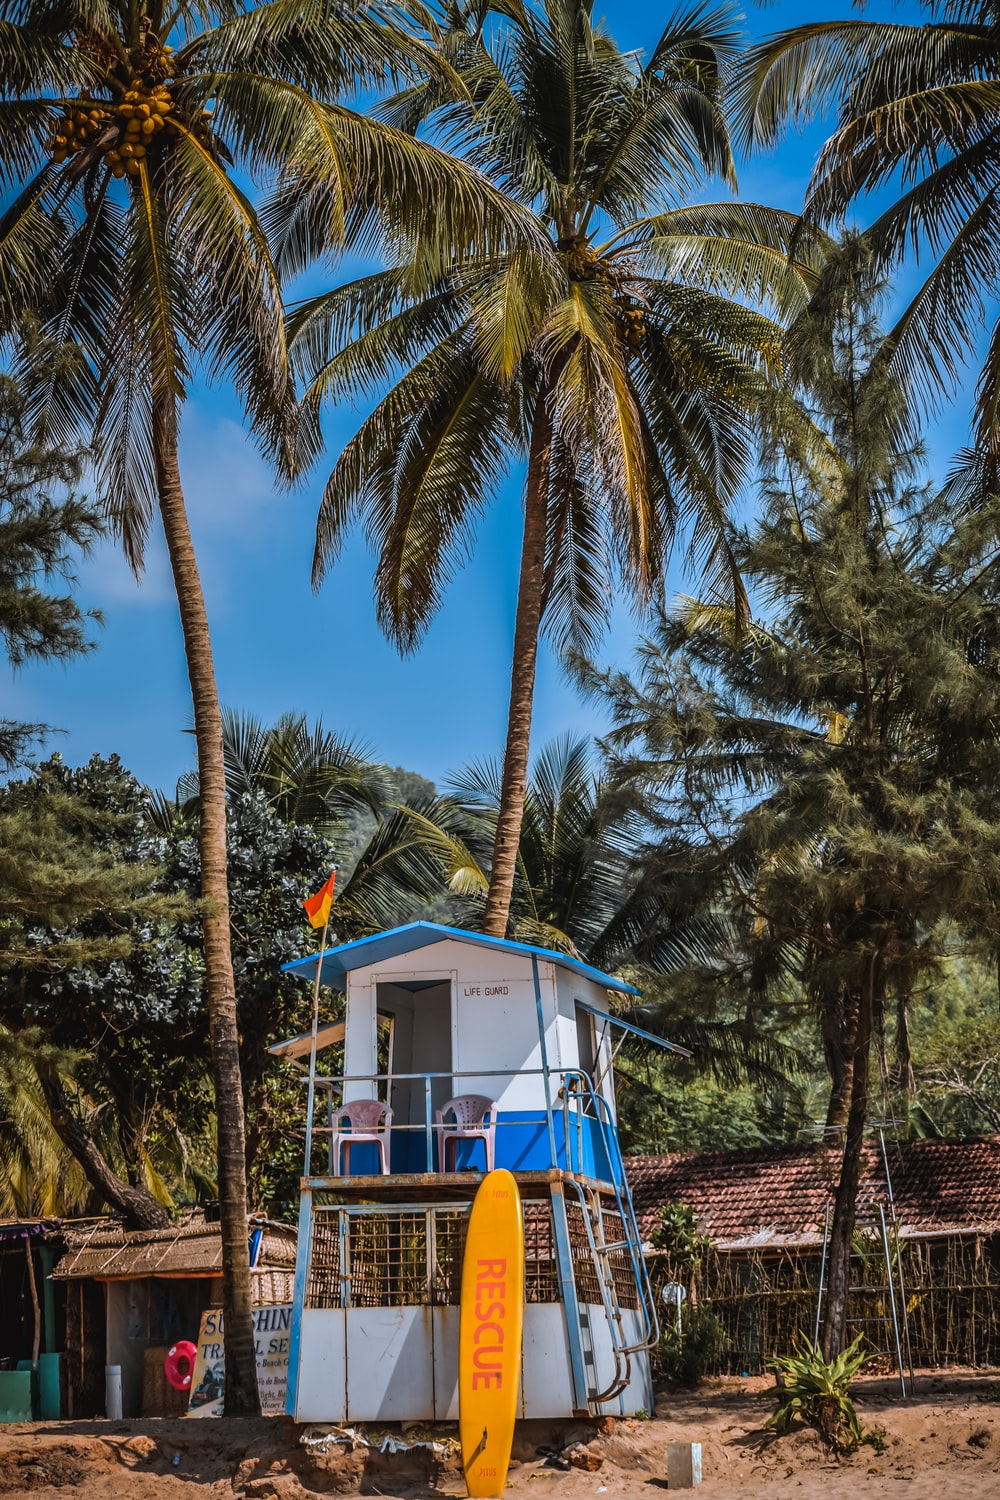 yellow and blue wooden house surrounded by palm trees